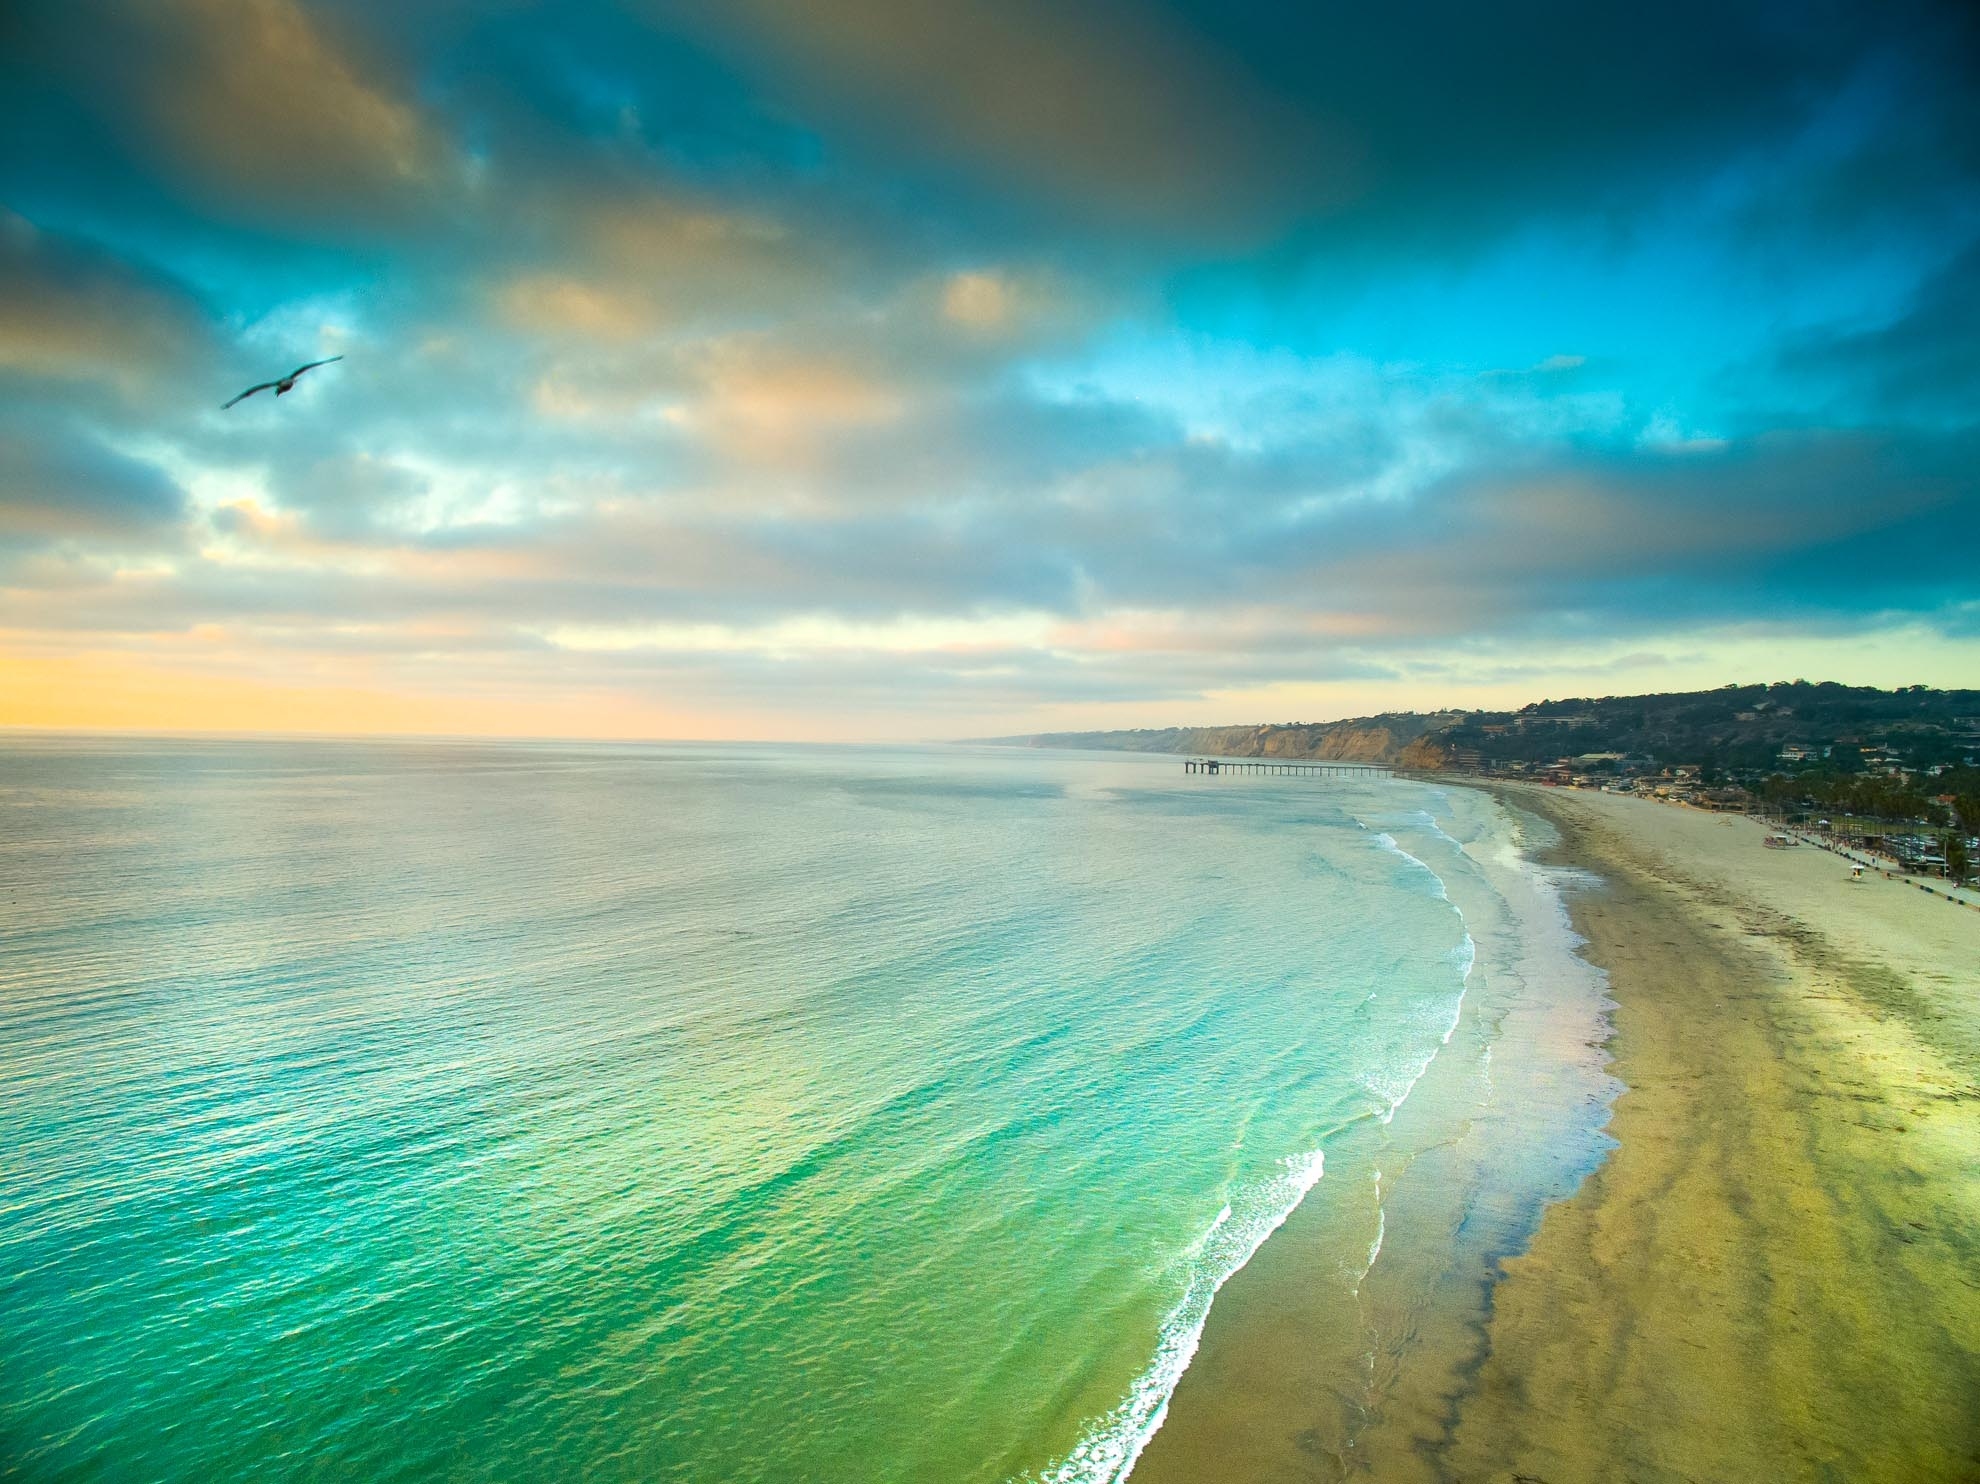 Drone Photograph of La Jolla Beach at sunset